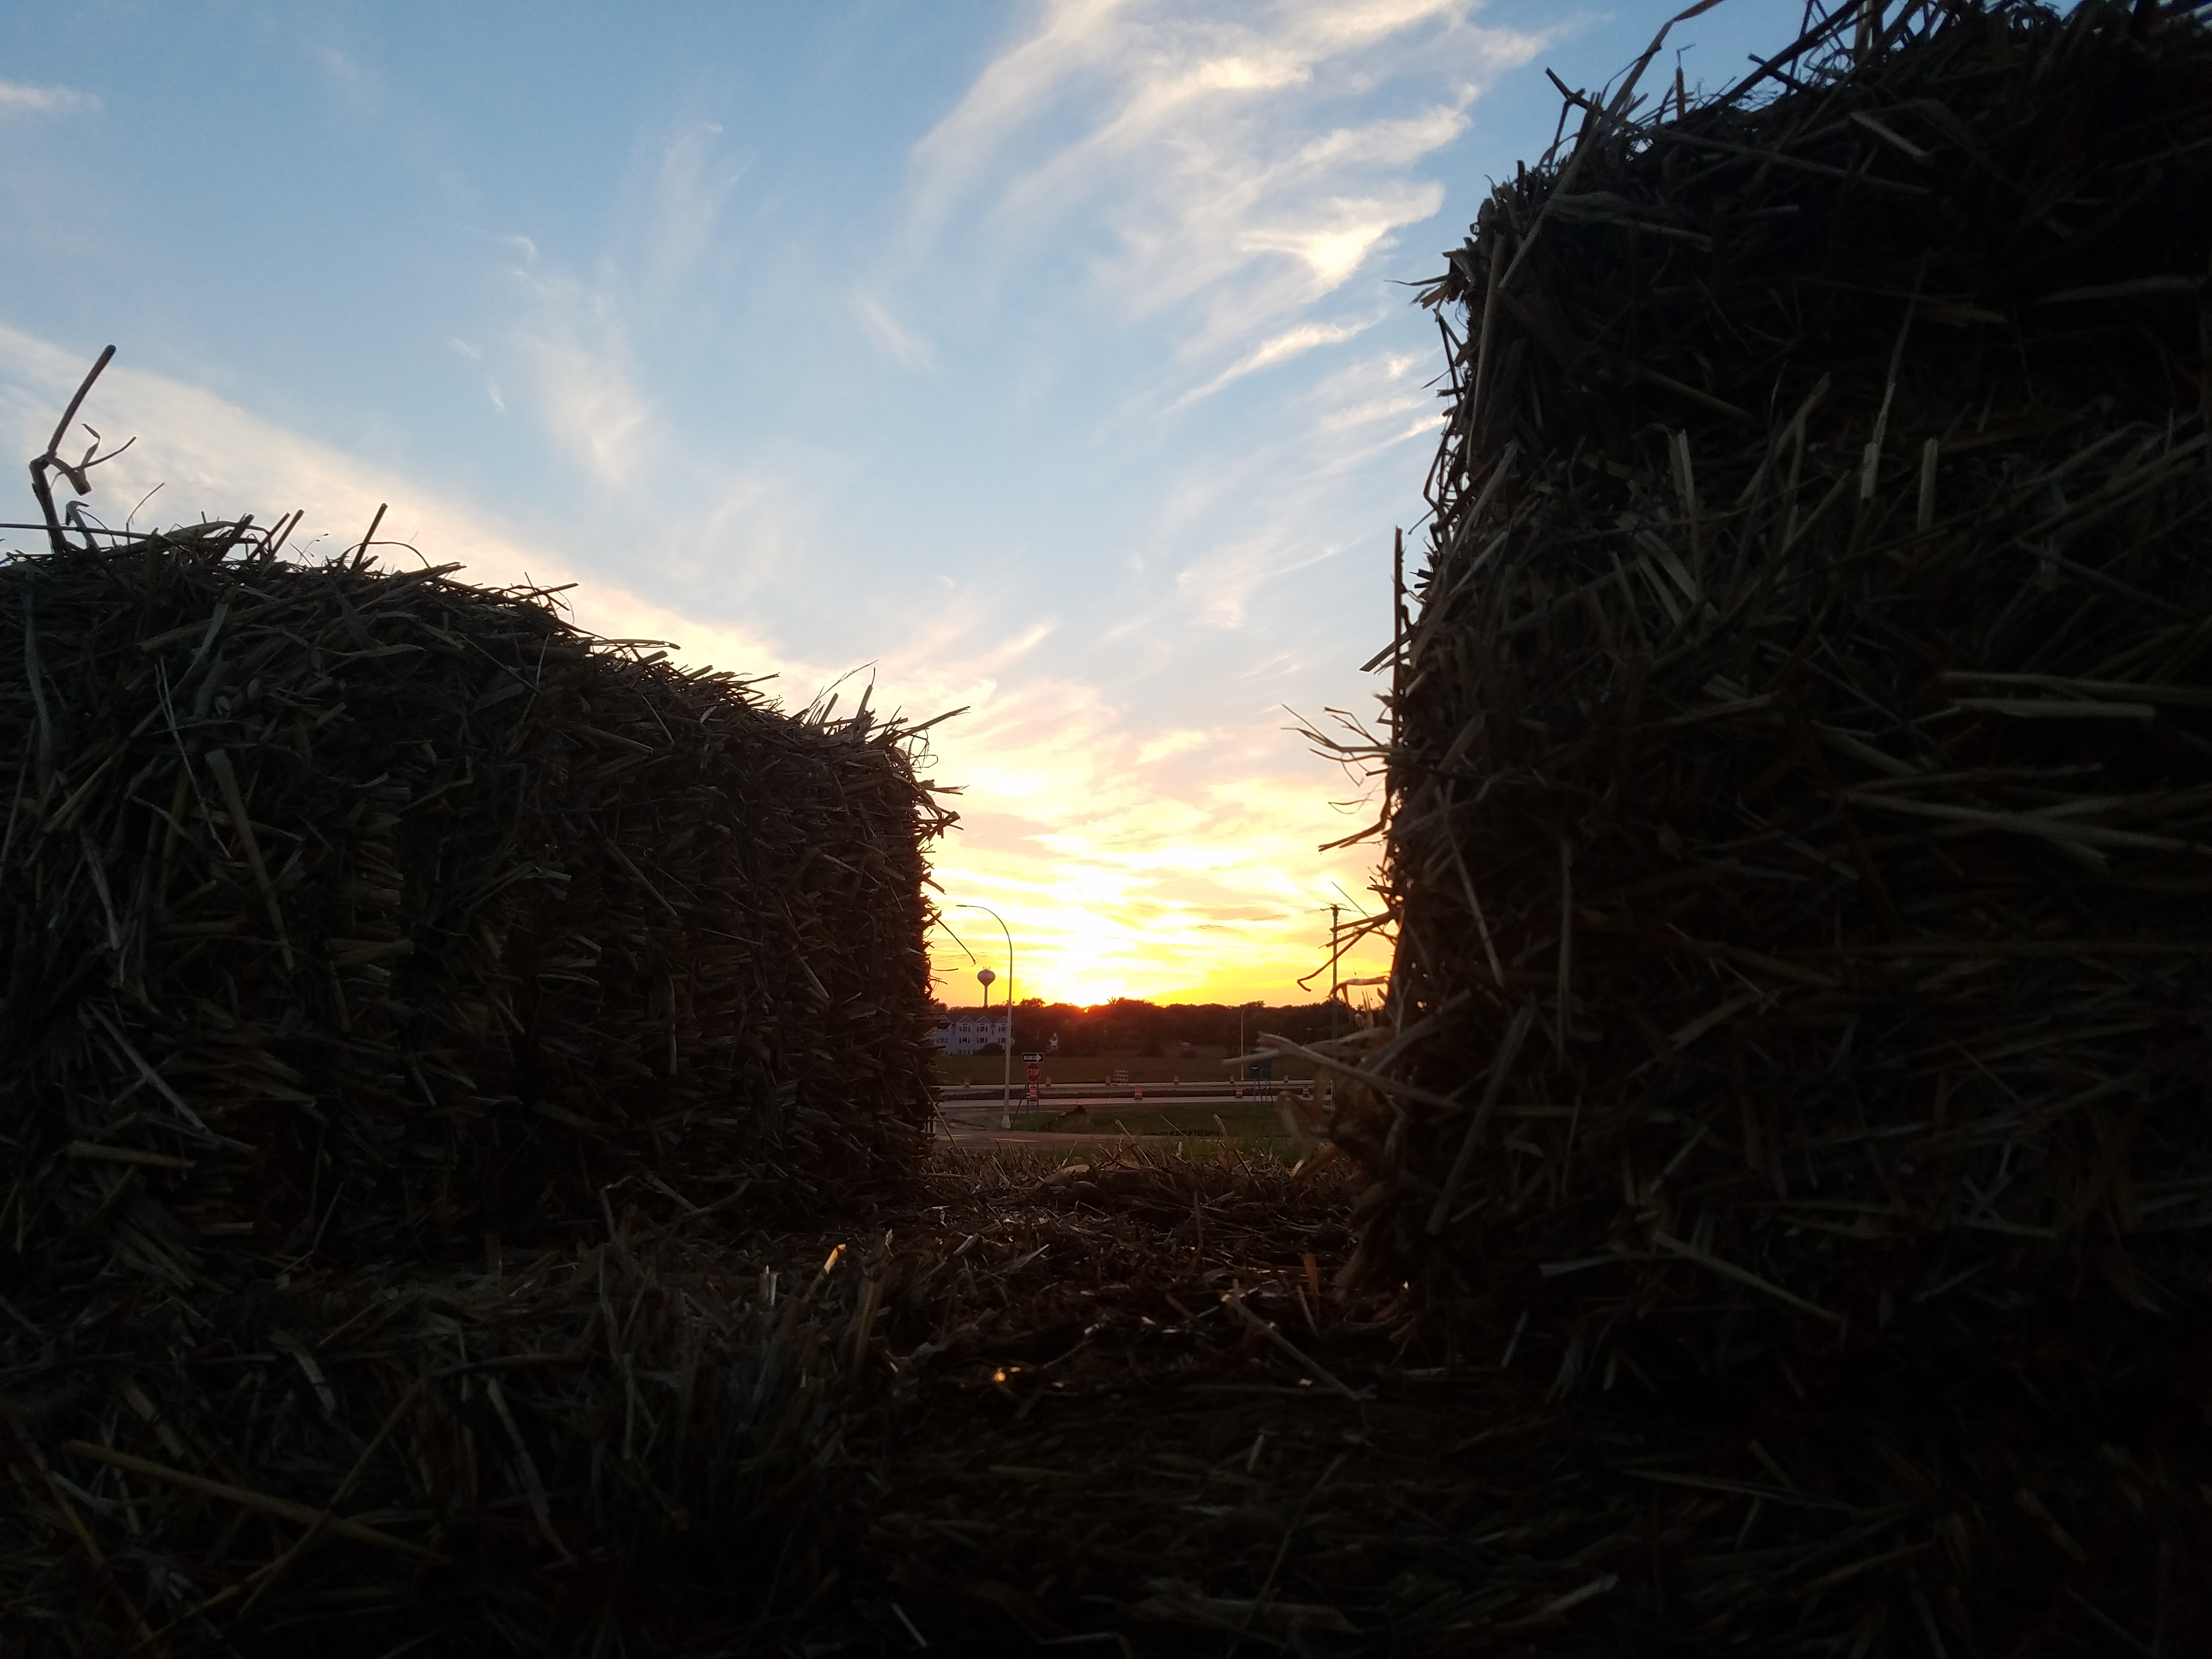 hay-bails-at-sunset-19.jpg